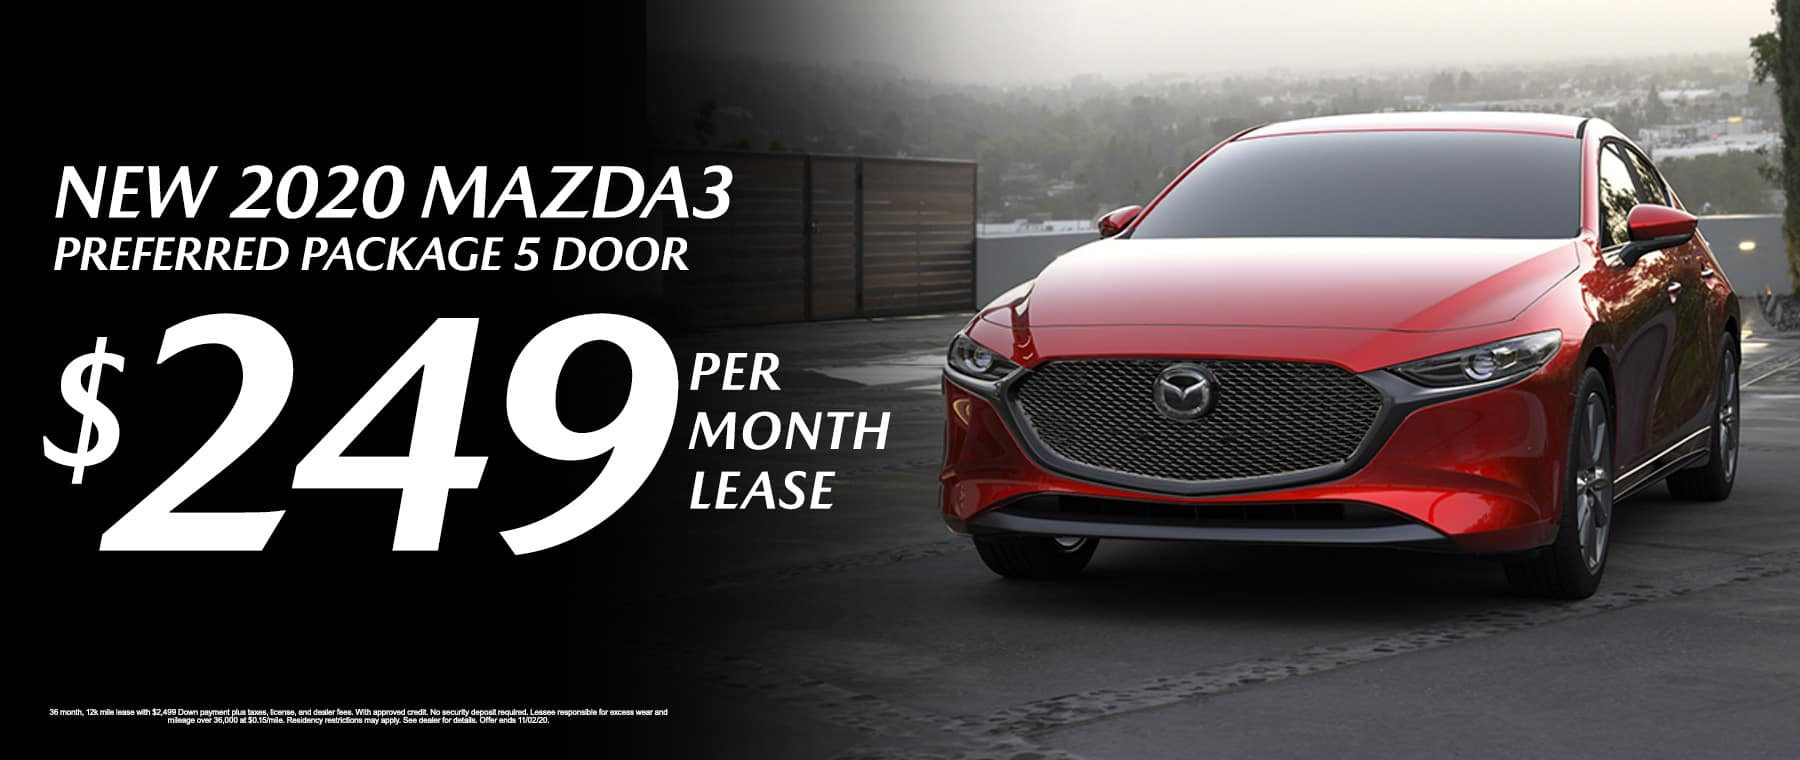 Lease a New 2020 Mazda3 Preferred Package 5 Door at Mazda of Fort Walton Beach